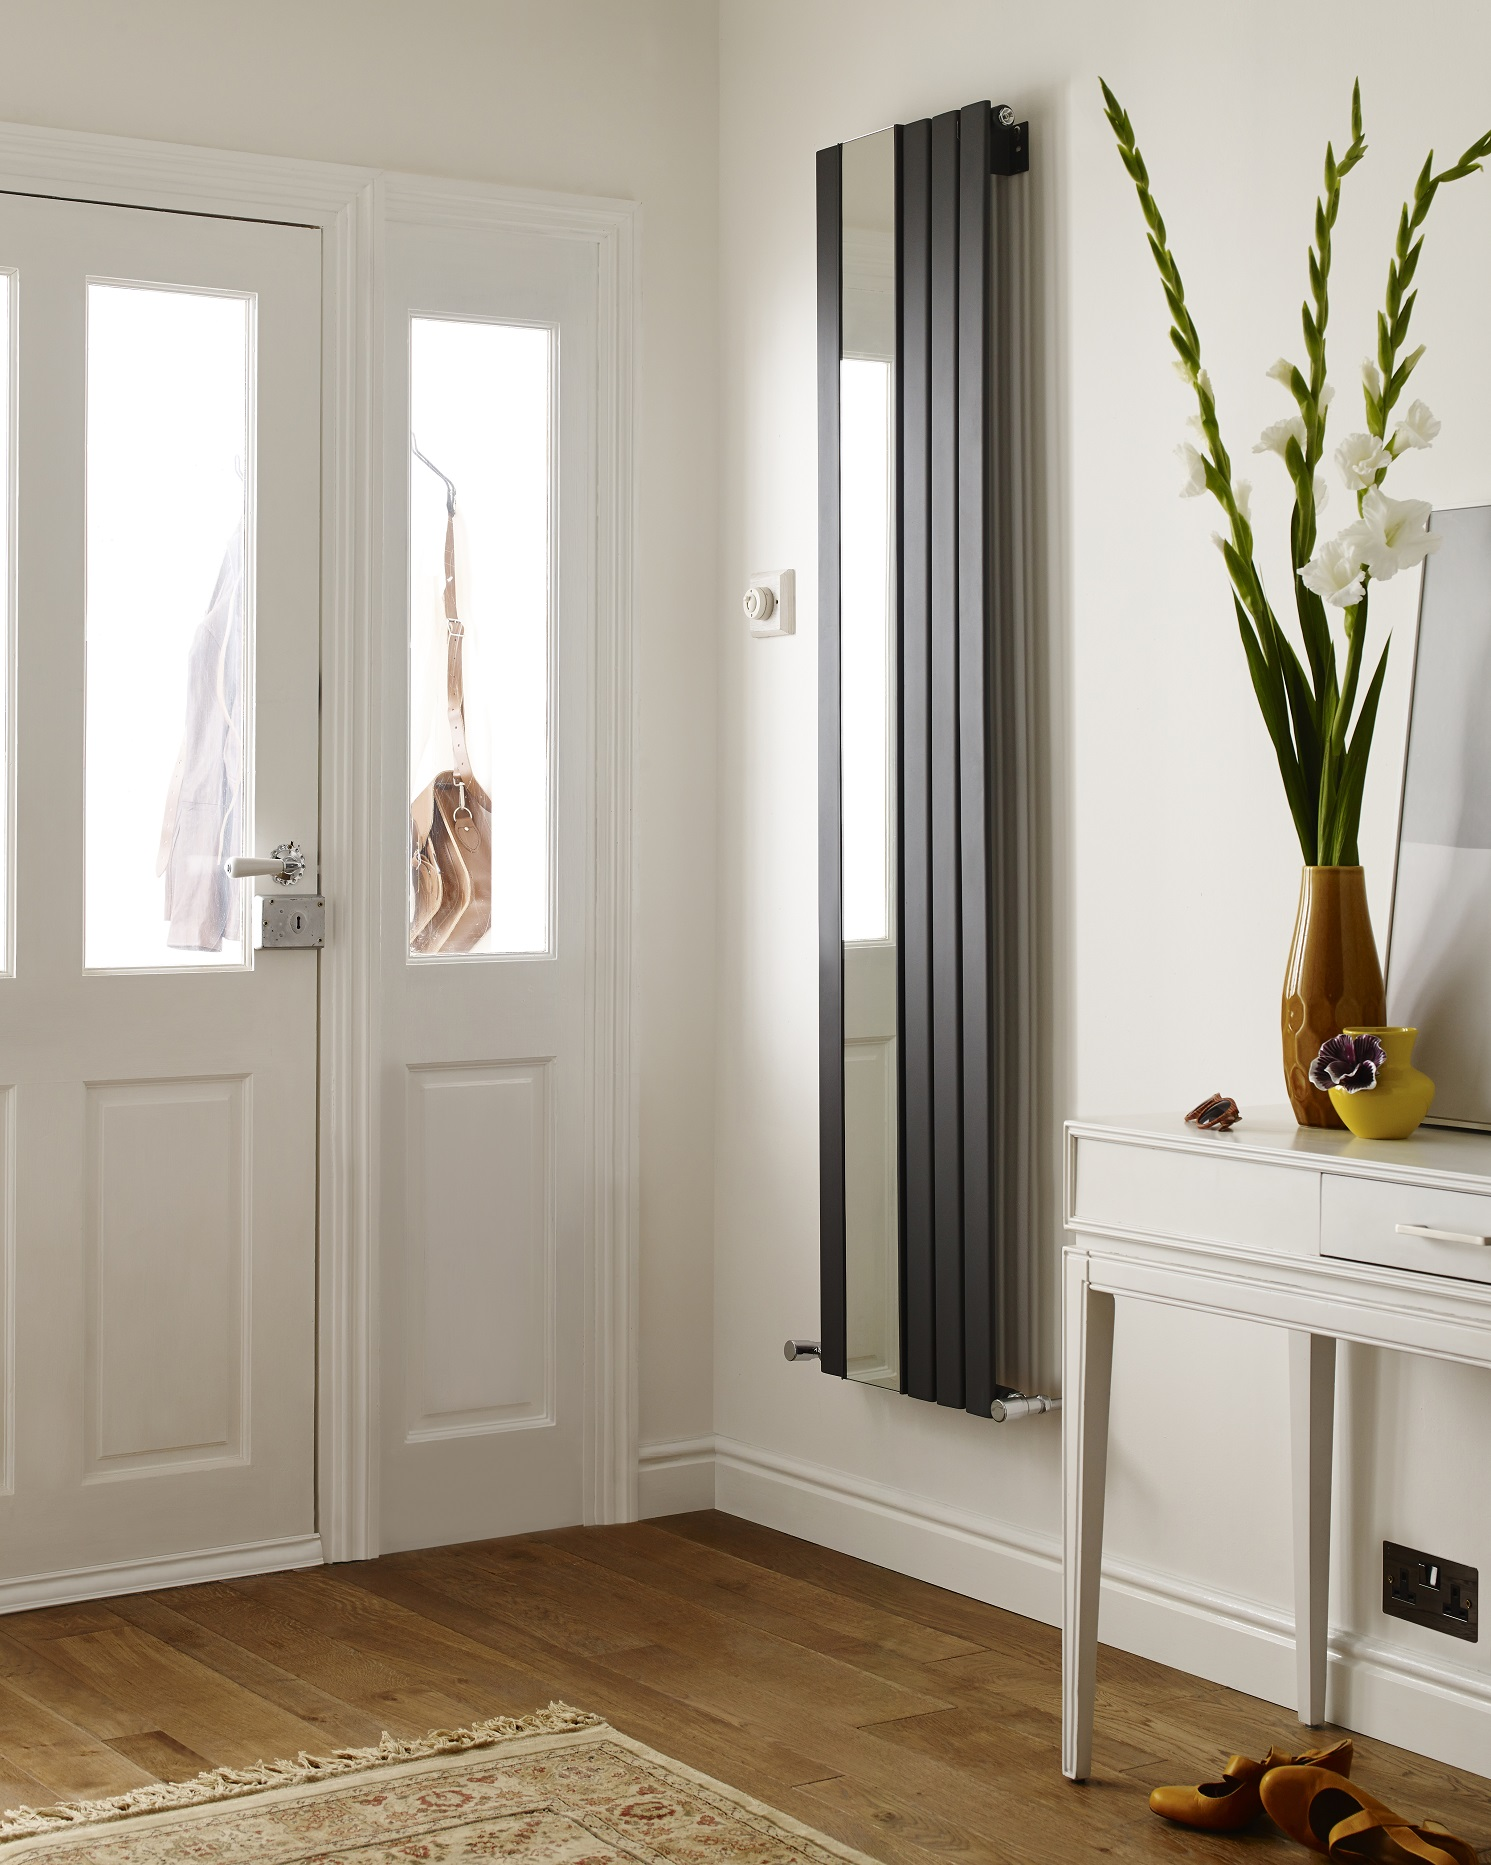 Vertical Designer Radiator With Mirror